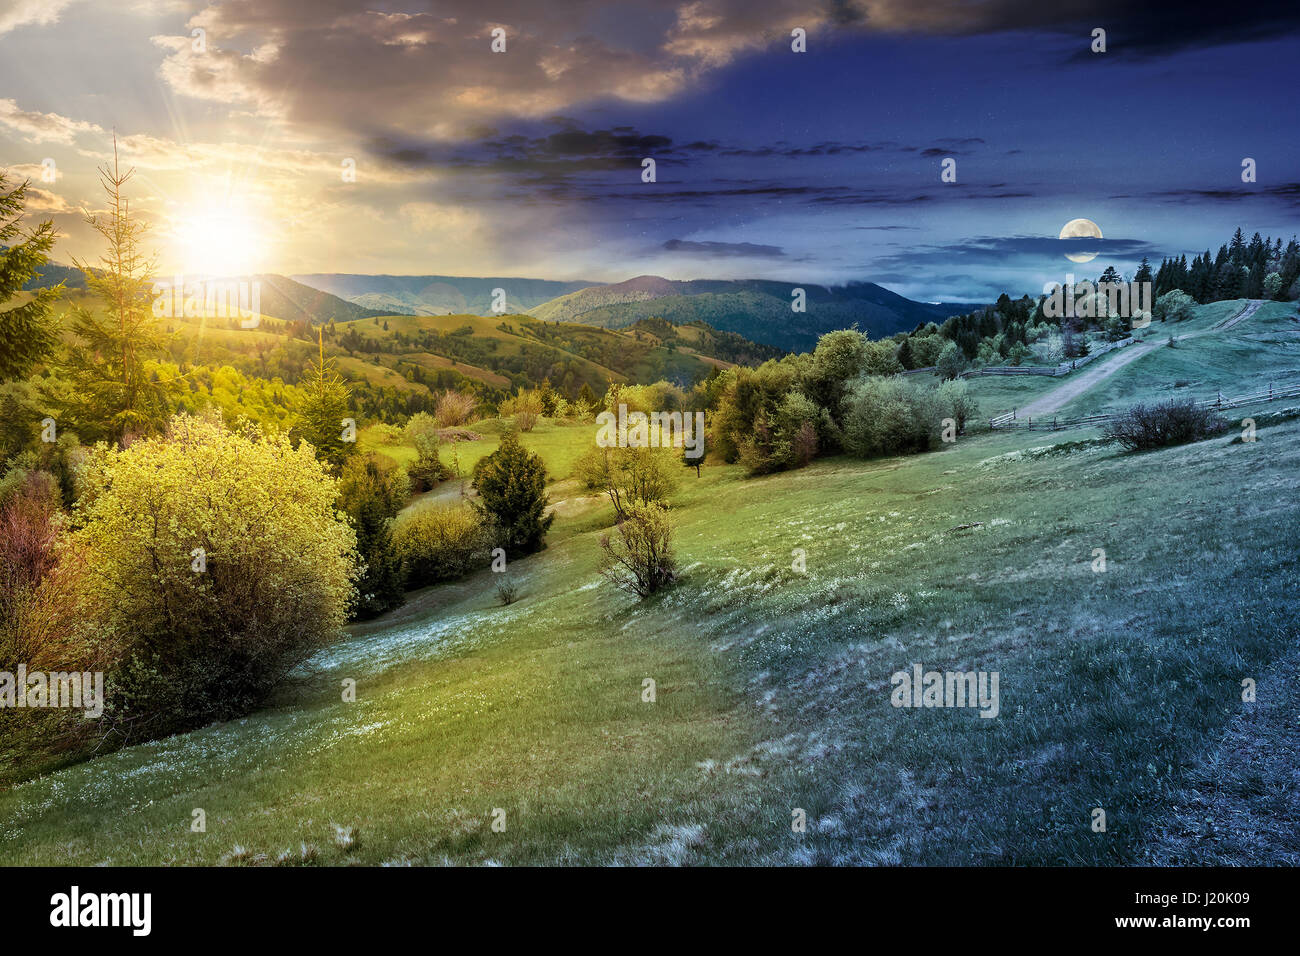 composite countryside landscape. day and night time change concept. forest in mountain rural area. grassy agricultural - Stock Image